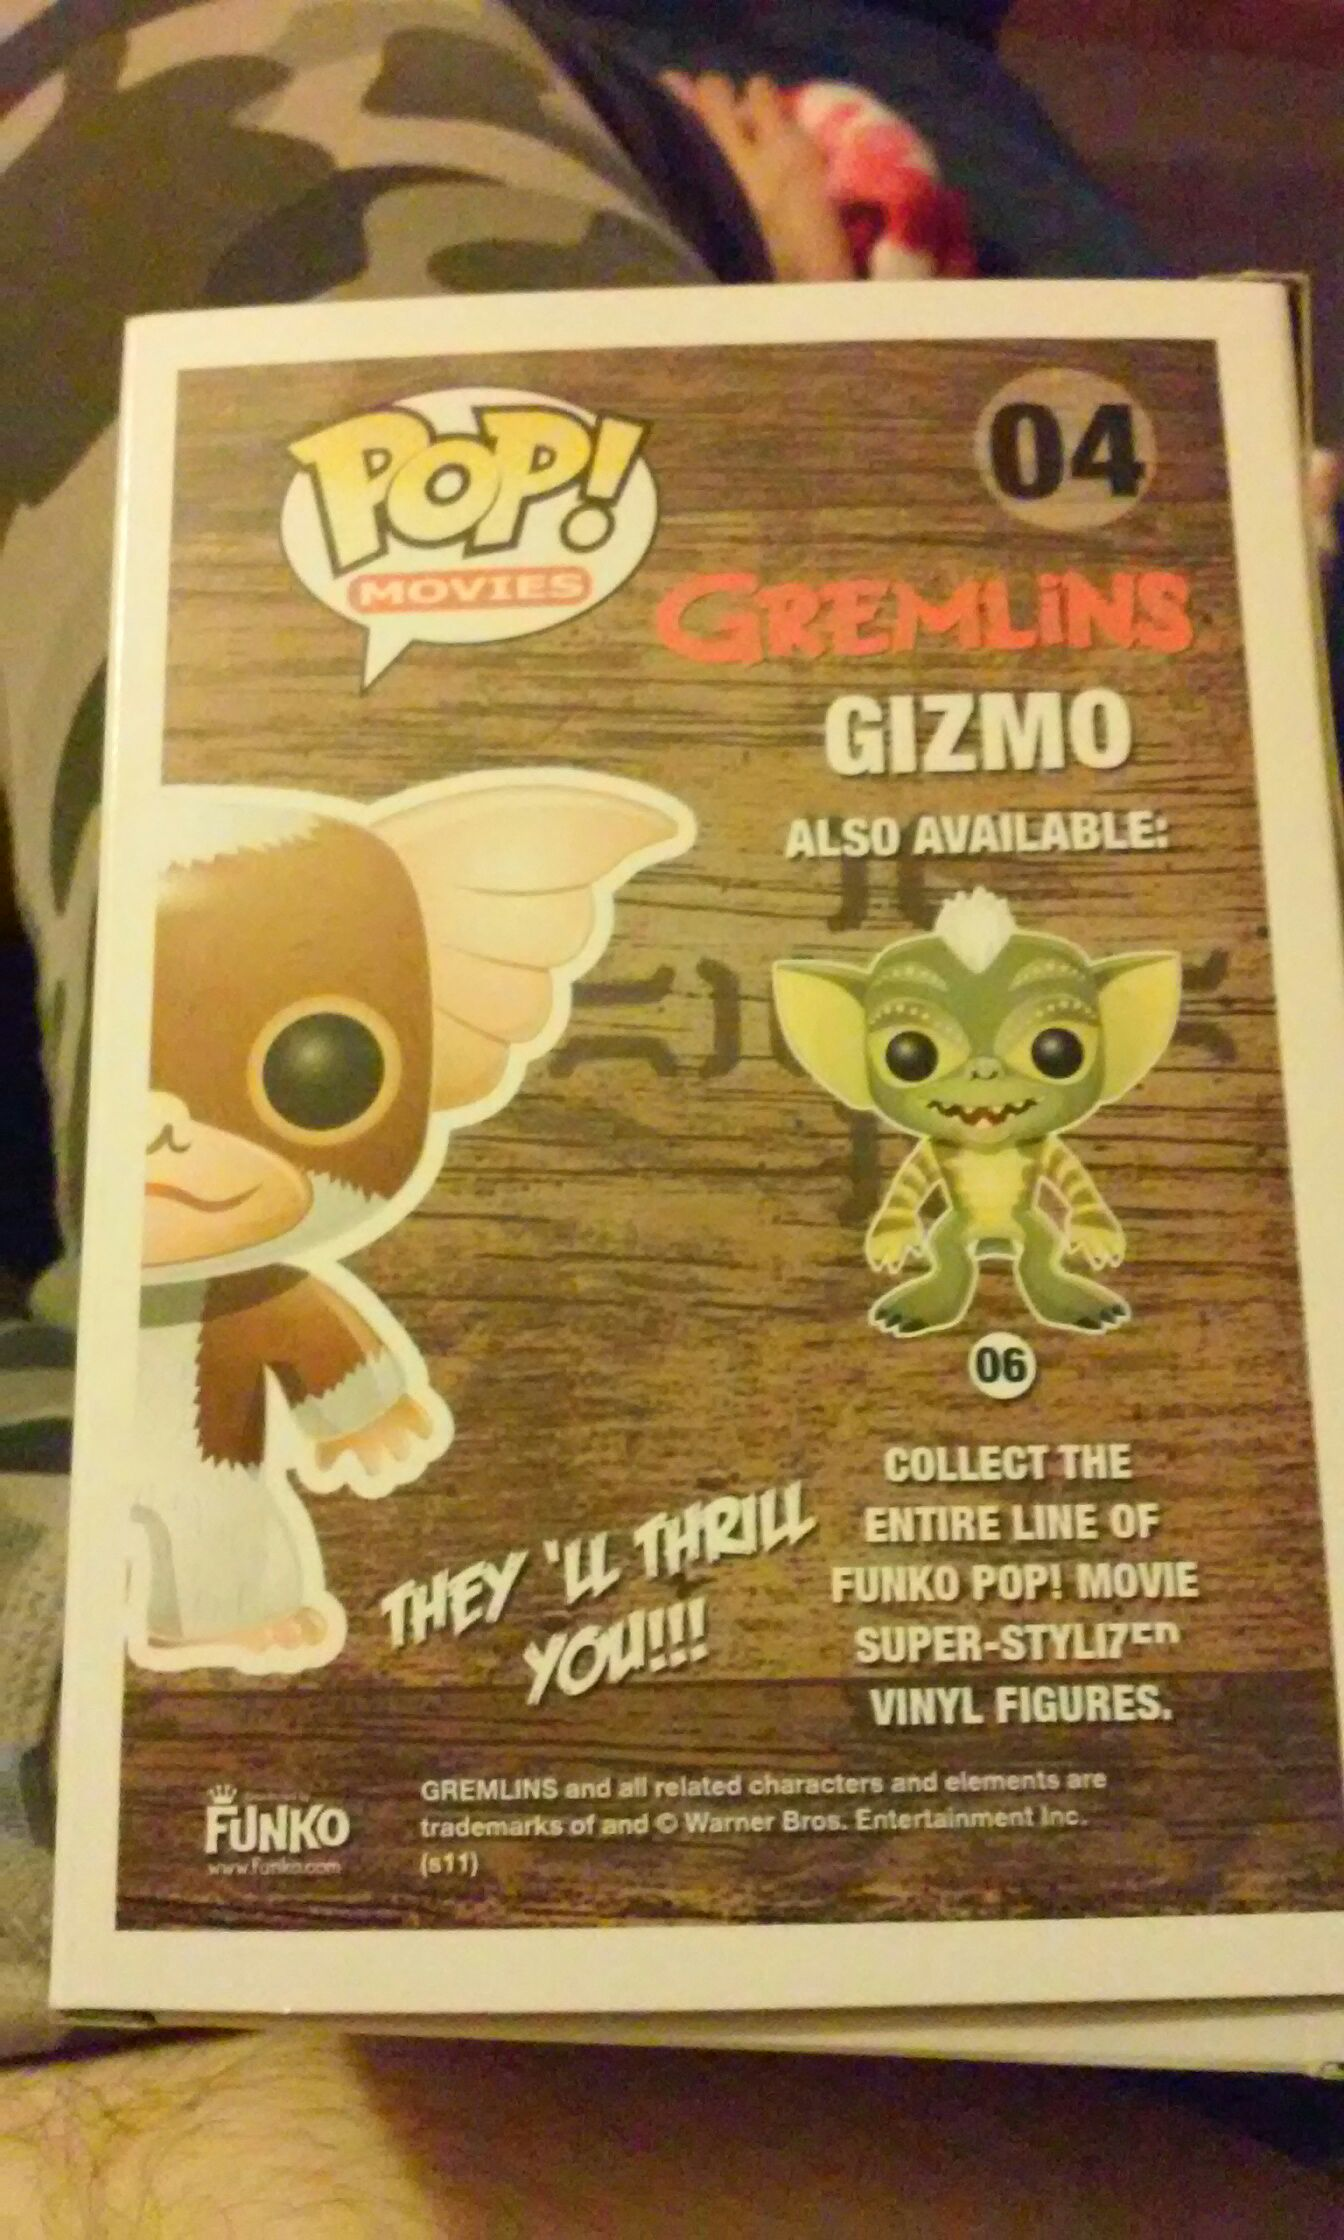 Gizmo 04 Bobblehead - Movies (2015) back image (back cover, second image)